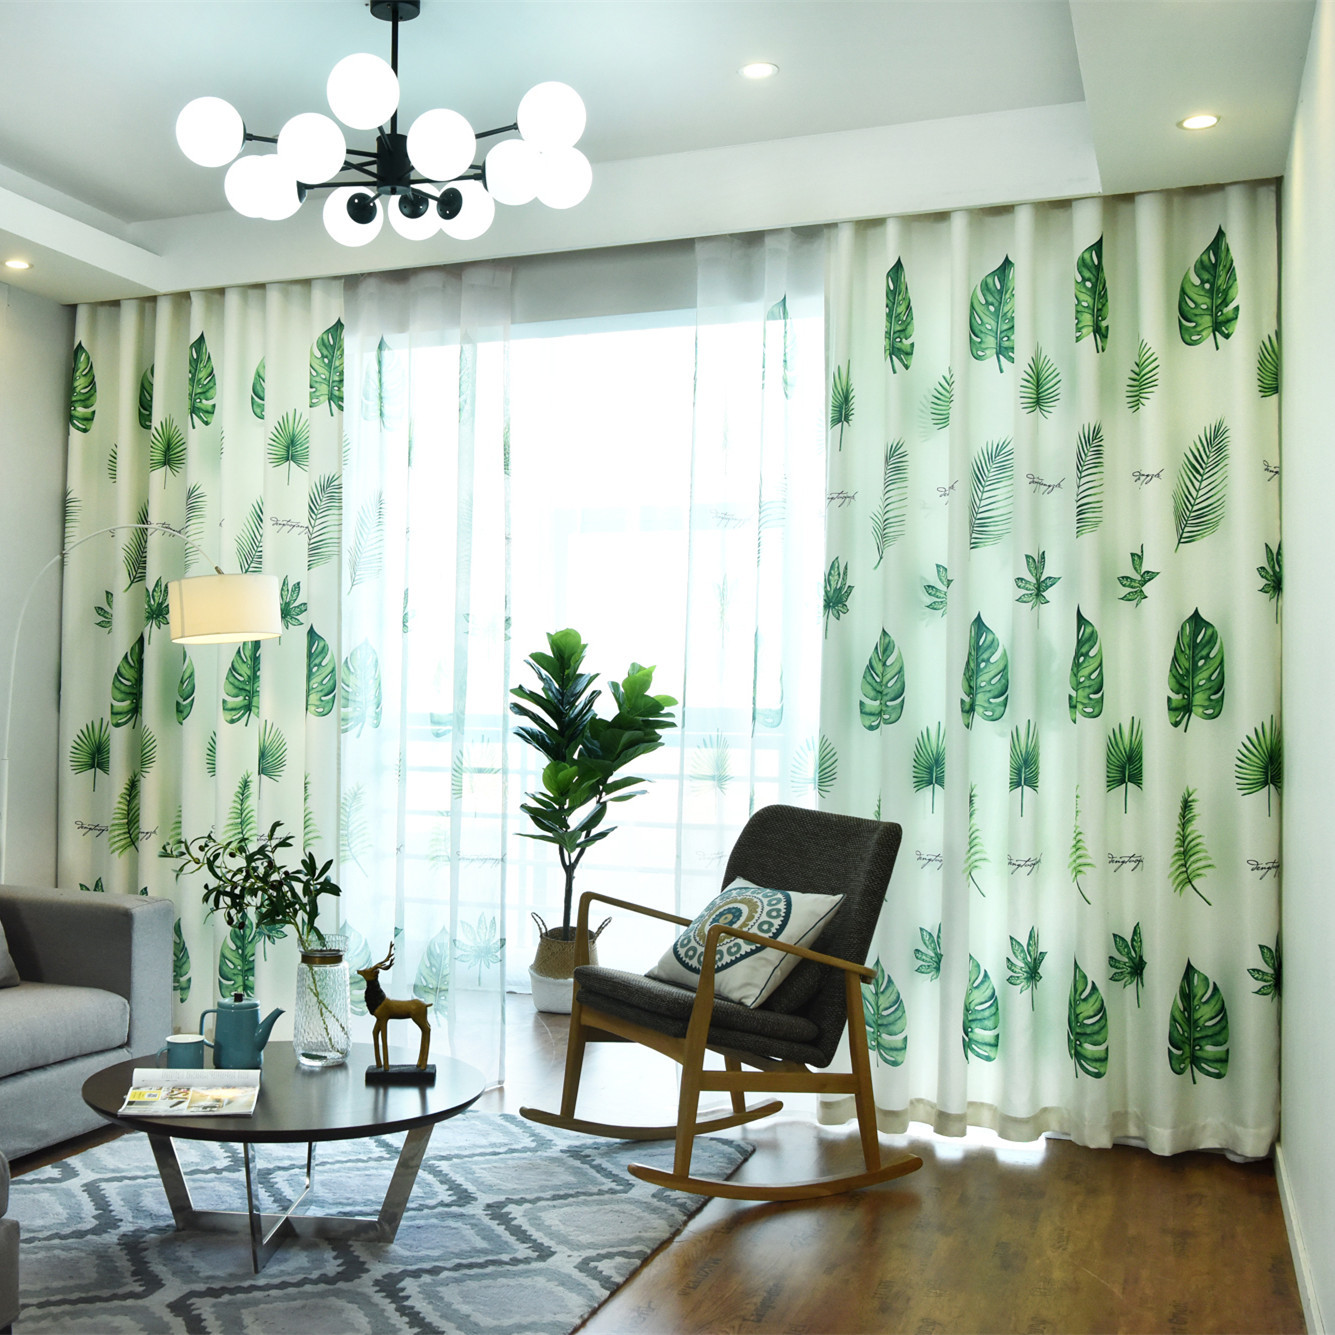 Rzcortinas Curtains For Living Room Bedroom Modern Fashion Curtain Monstera Leaf Printed Tulle Curtain Green Plant Drapes Curtains Aliexpress